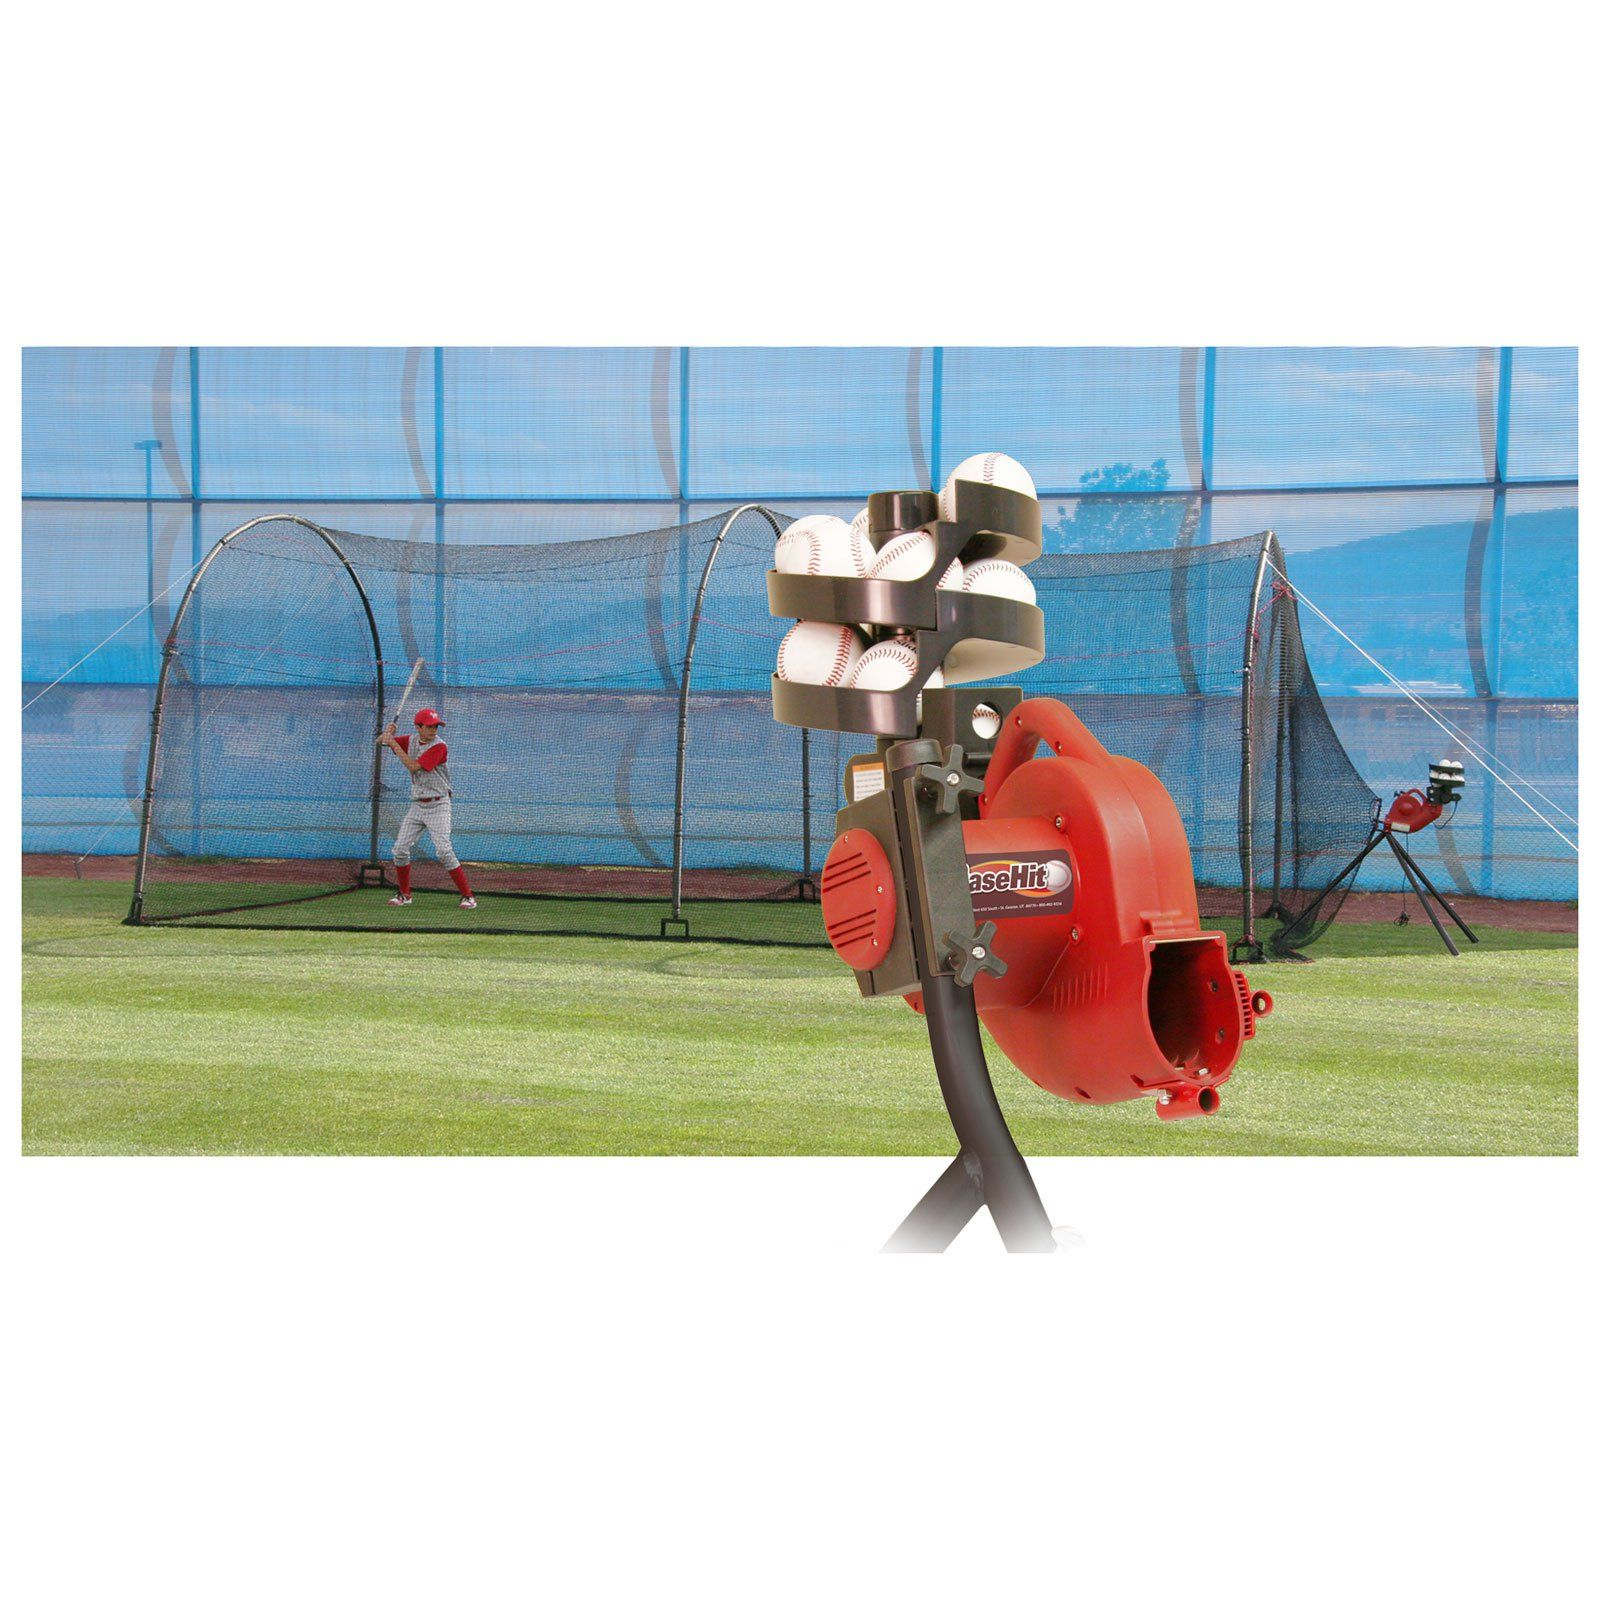 Heater Sports 24 Ft Basehit Pitching Machine Amp Xtender